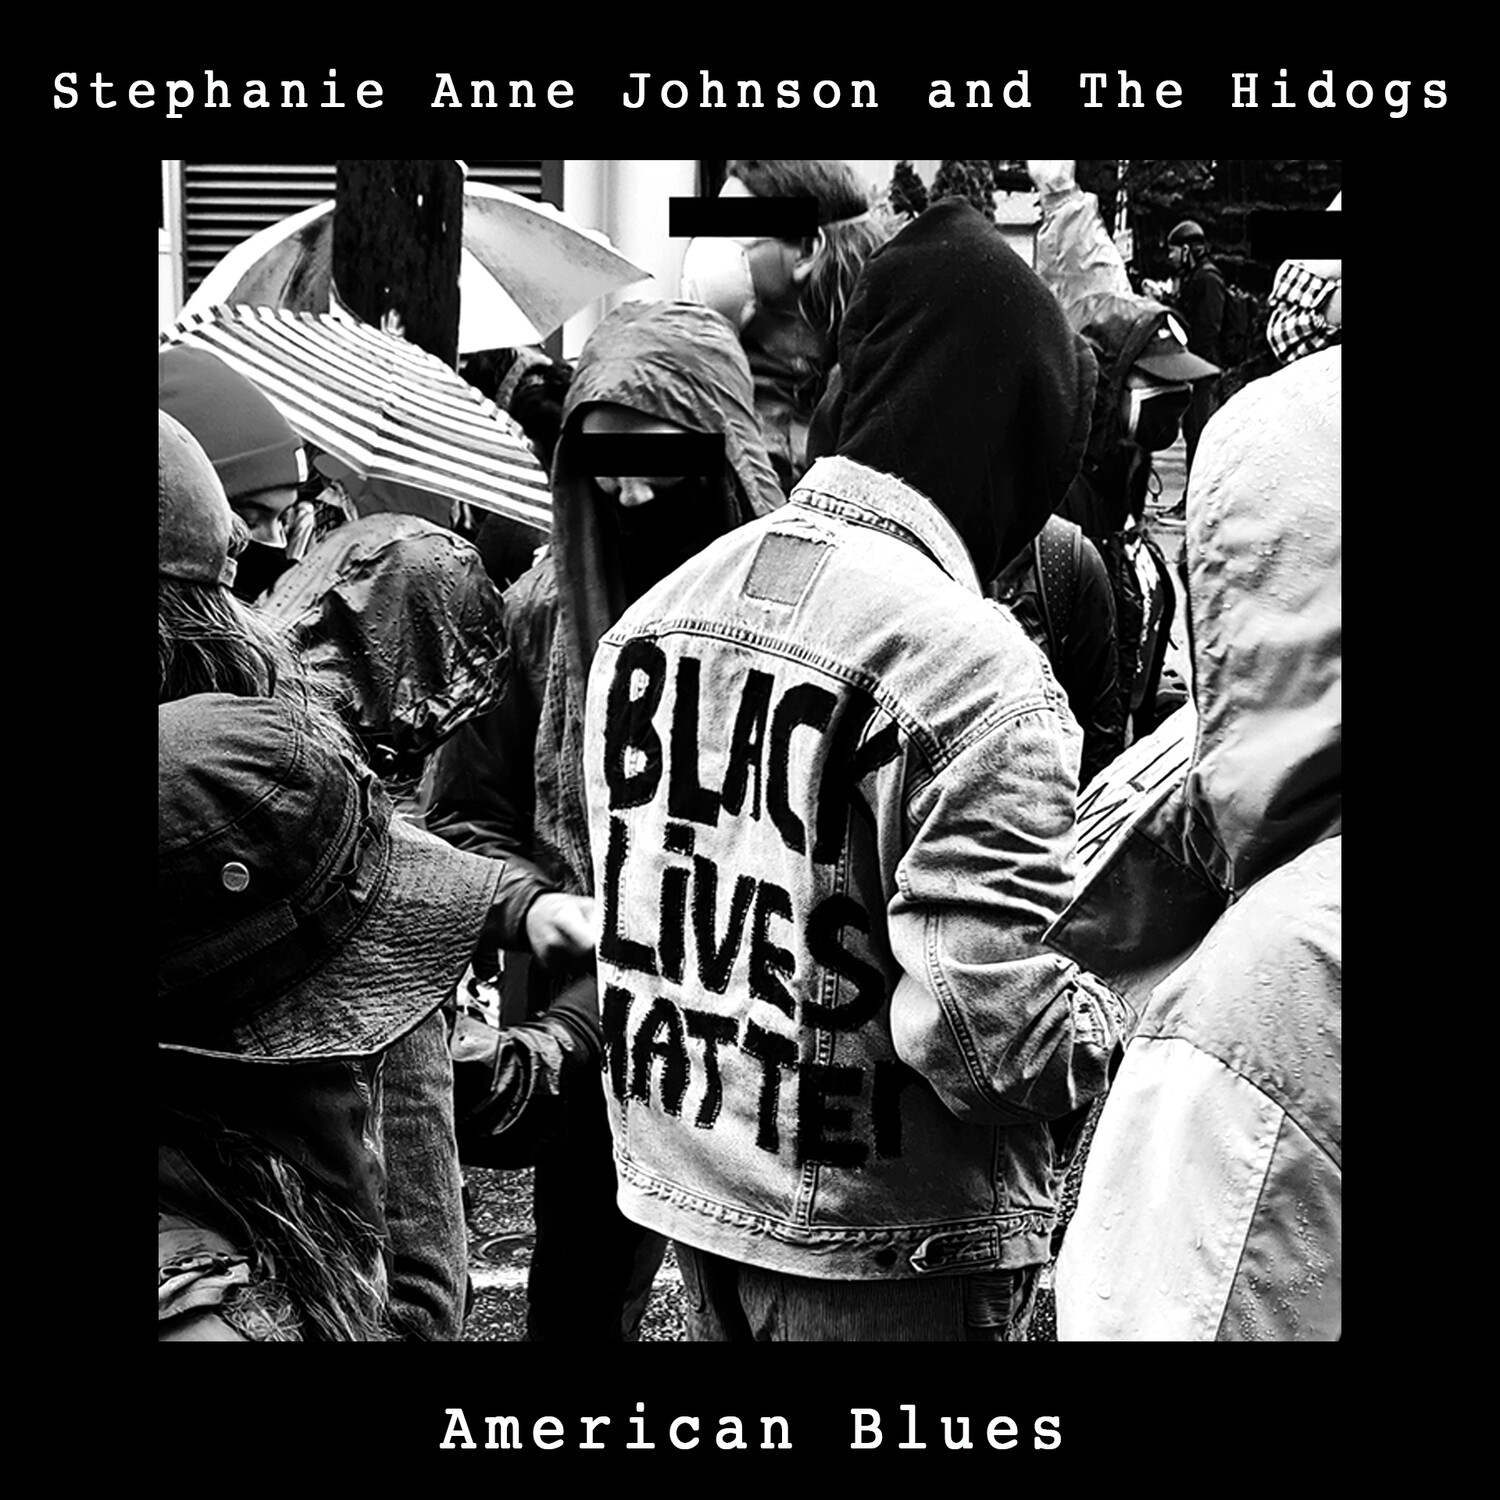 American Blues By Stephanie Anne Johnson and The Hidogs - Digital Download